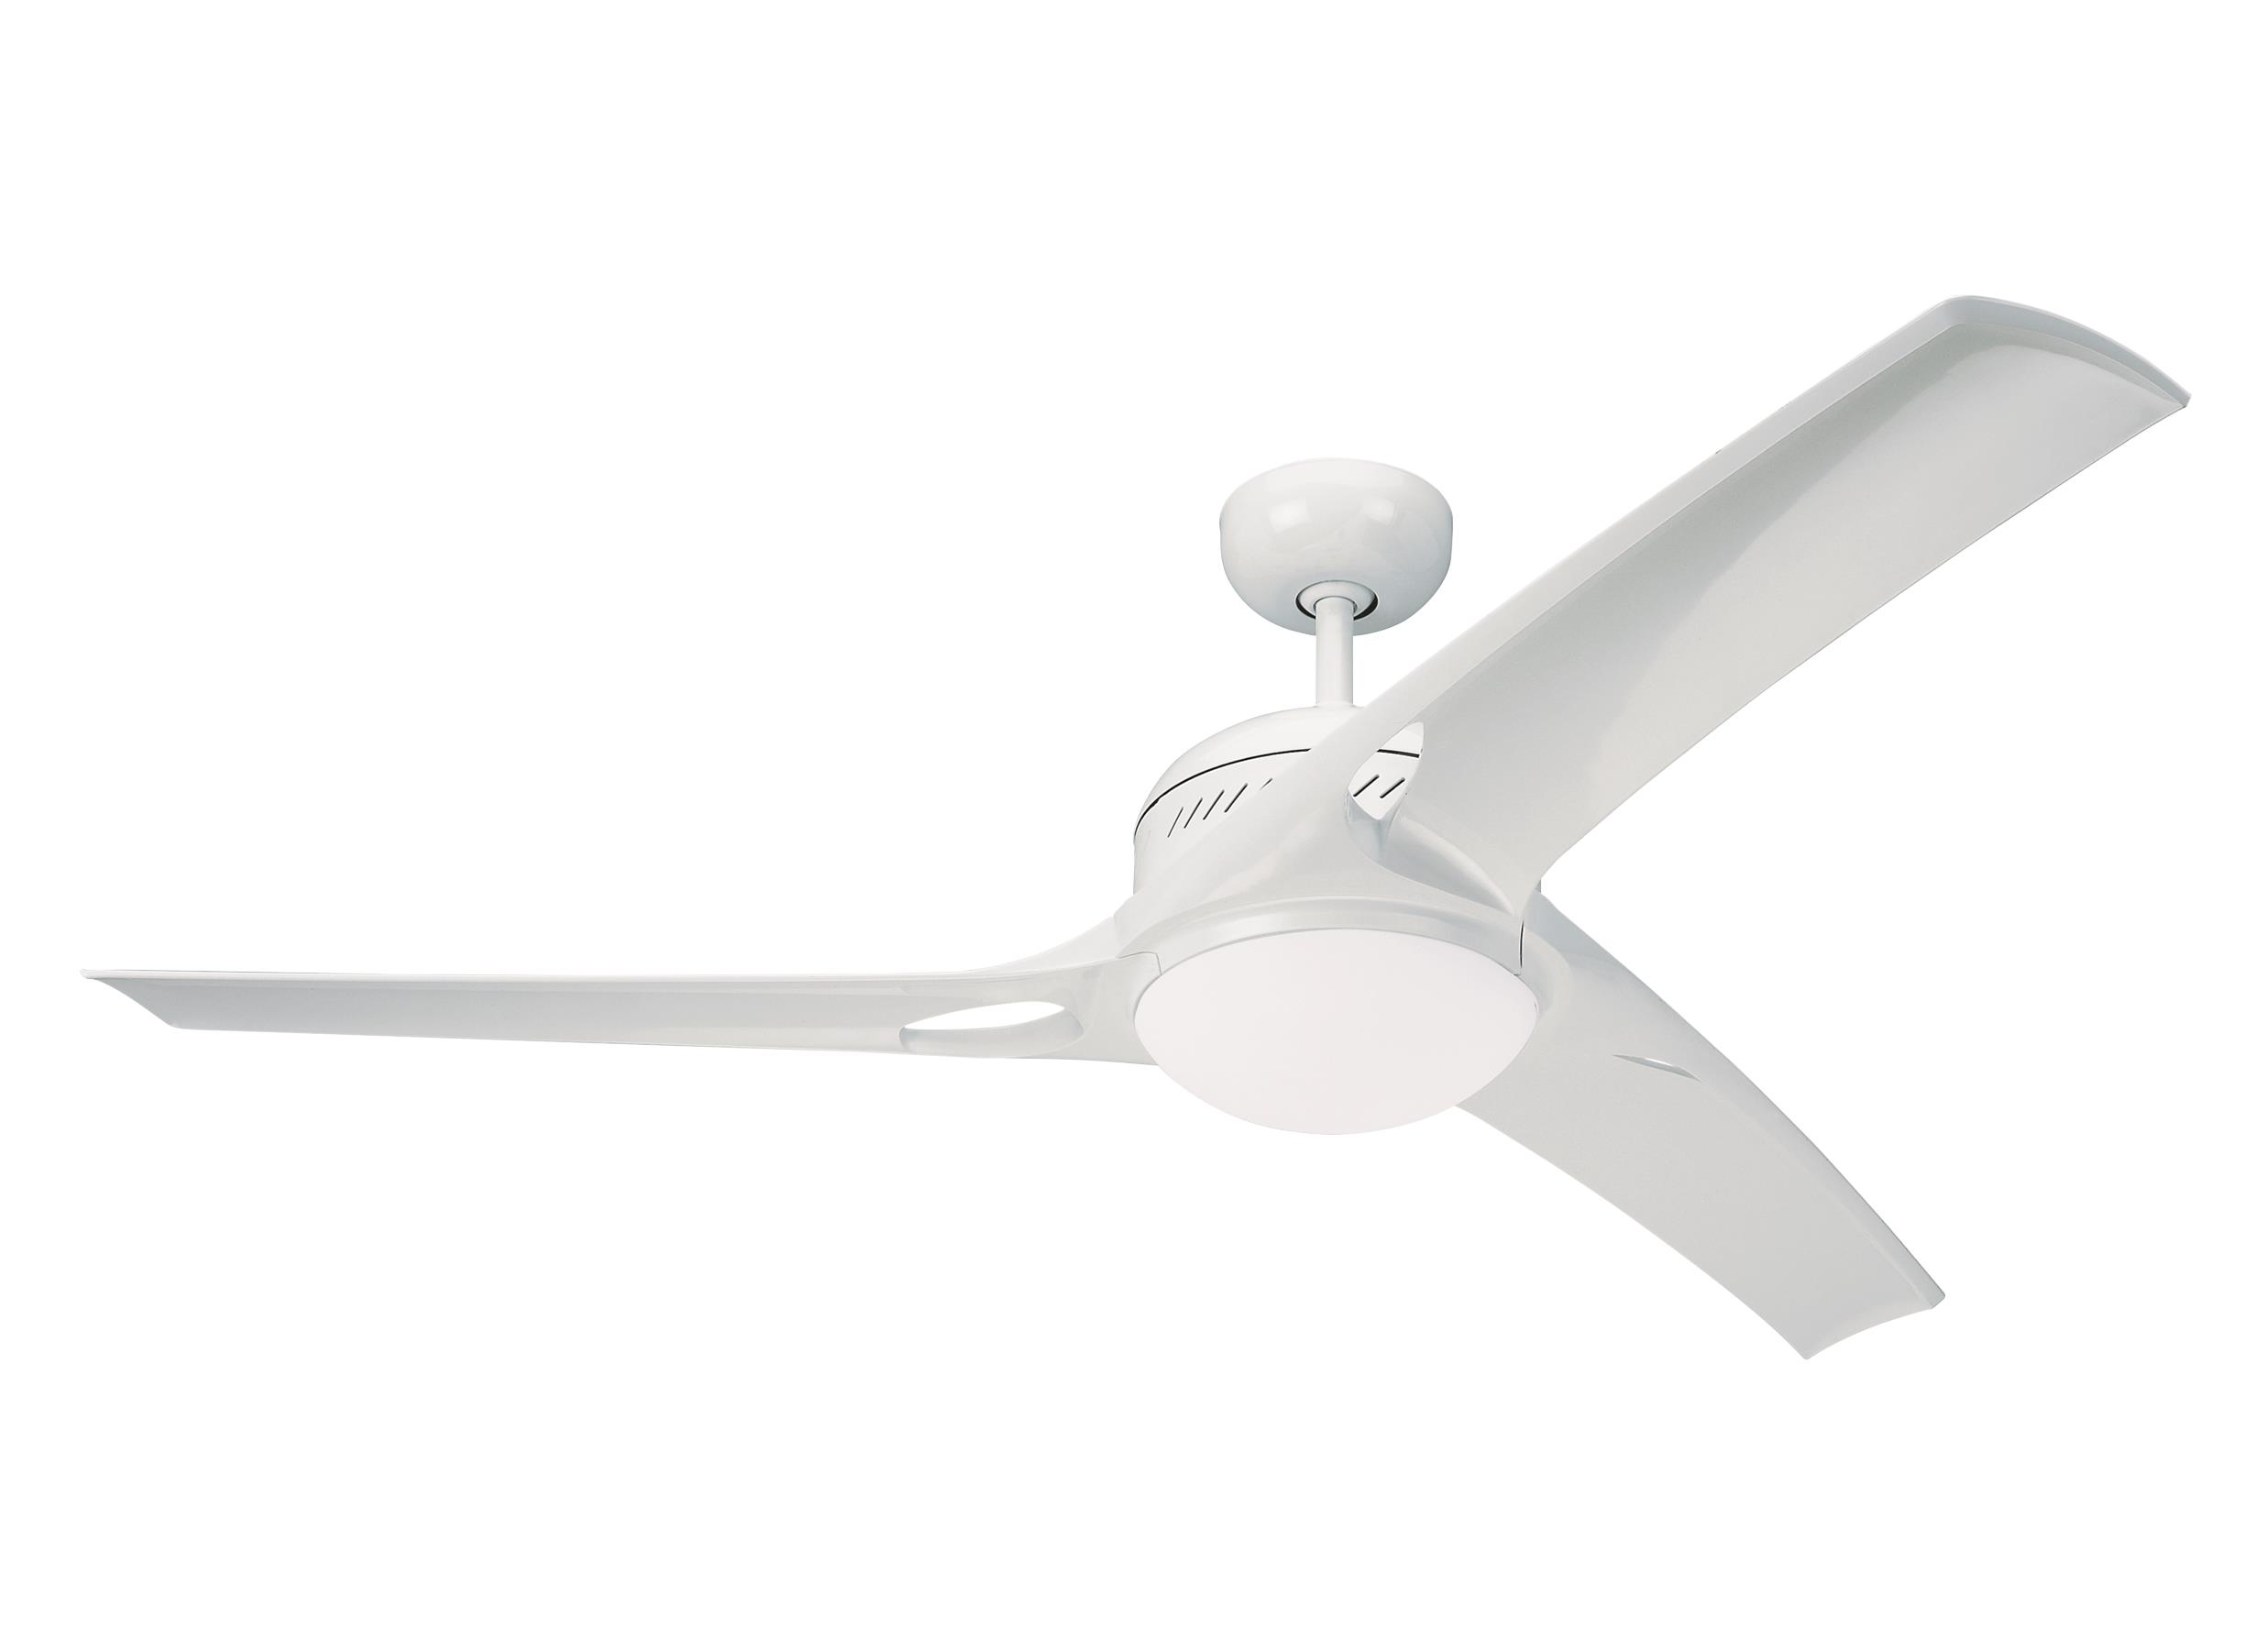 ceiling dee single exhaust light for led design fans beautiful with ceilings astonishing and leaf sale lighting on magnificent style decorating menards blade fan modern mesmerizing flush mount at home